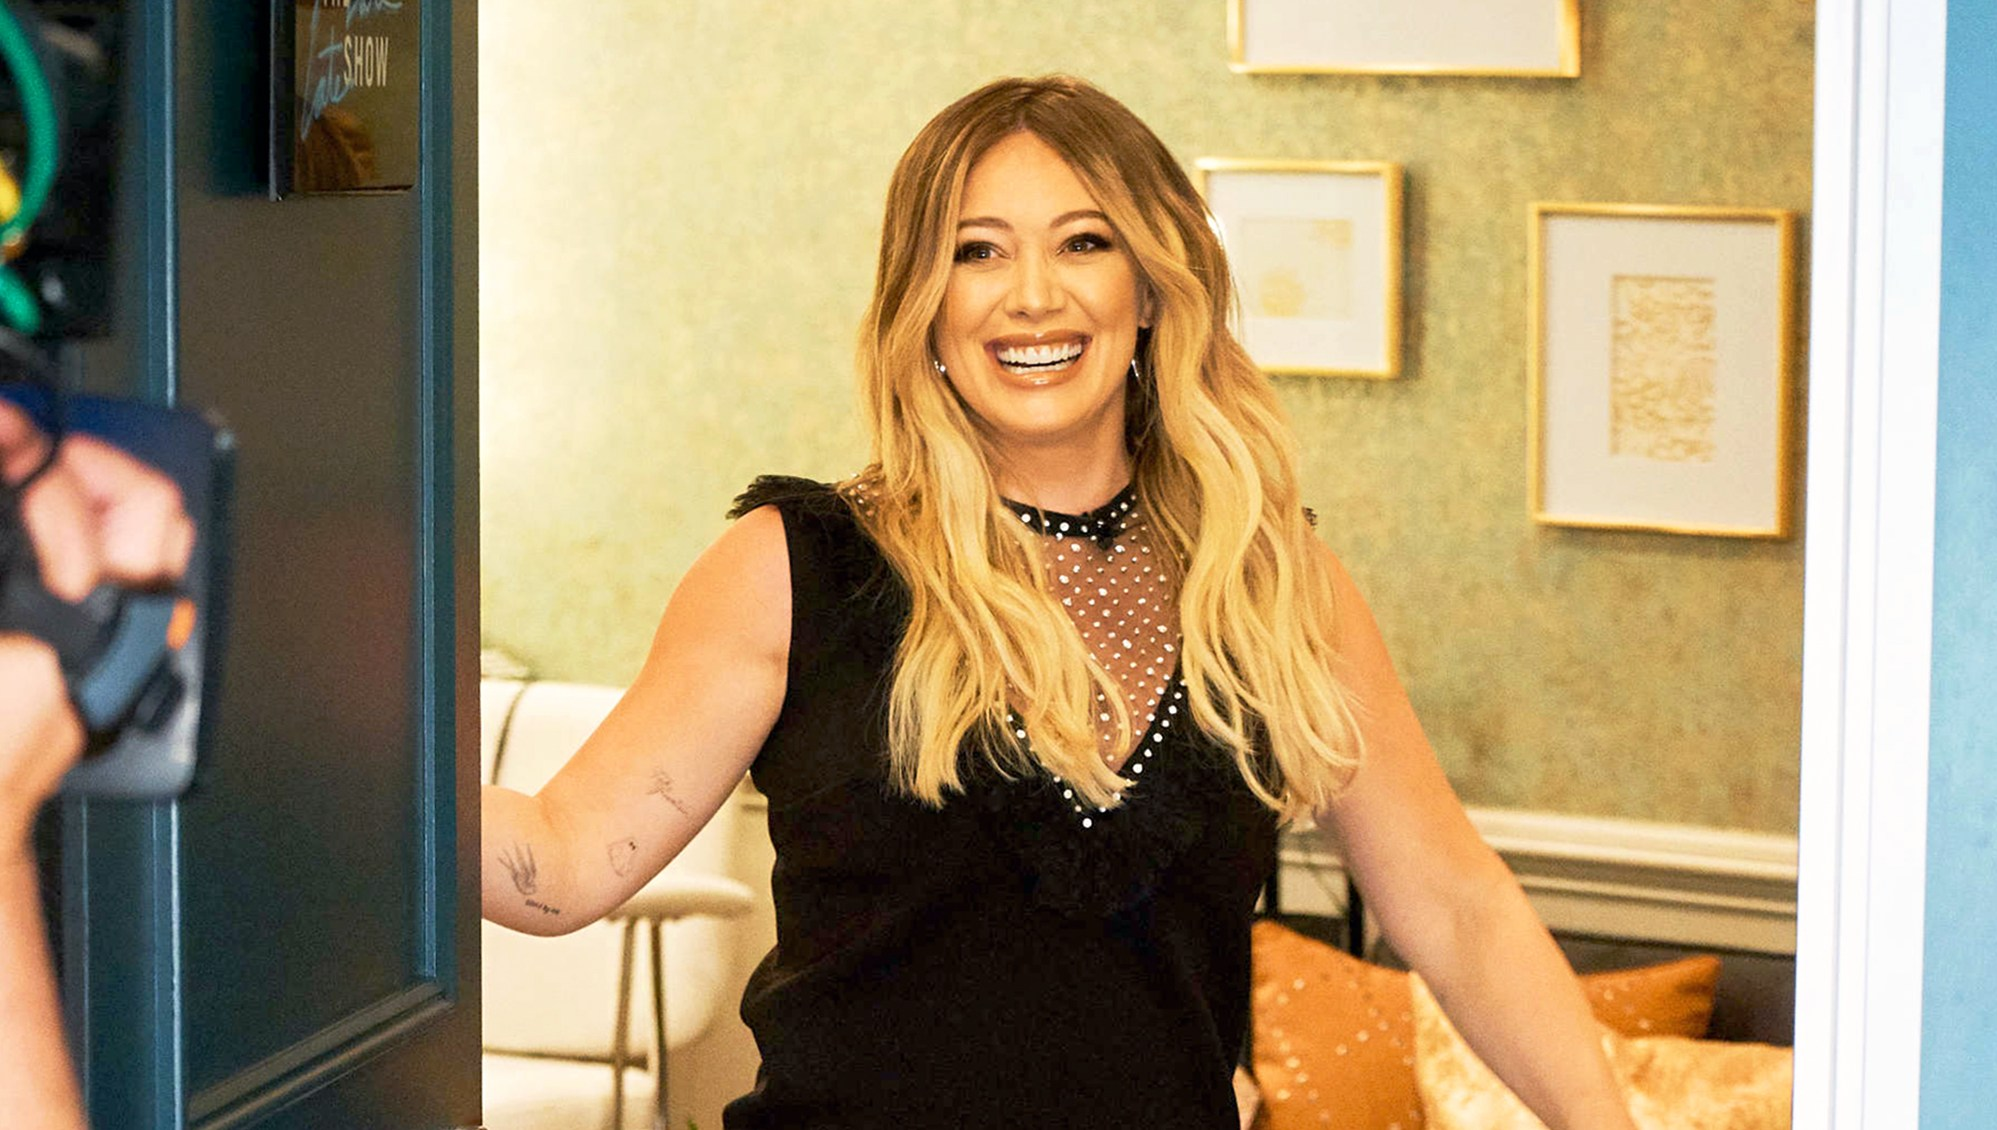 Hilary Duff on 'The Late Late Show with James Corden'